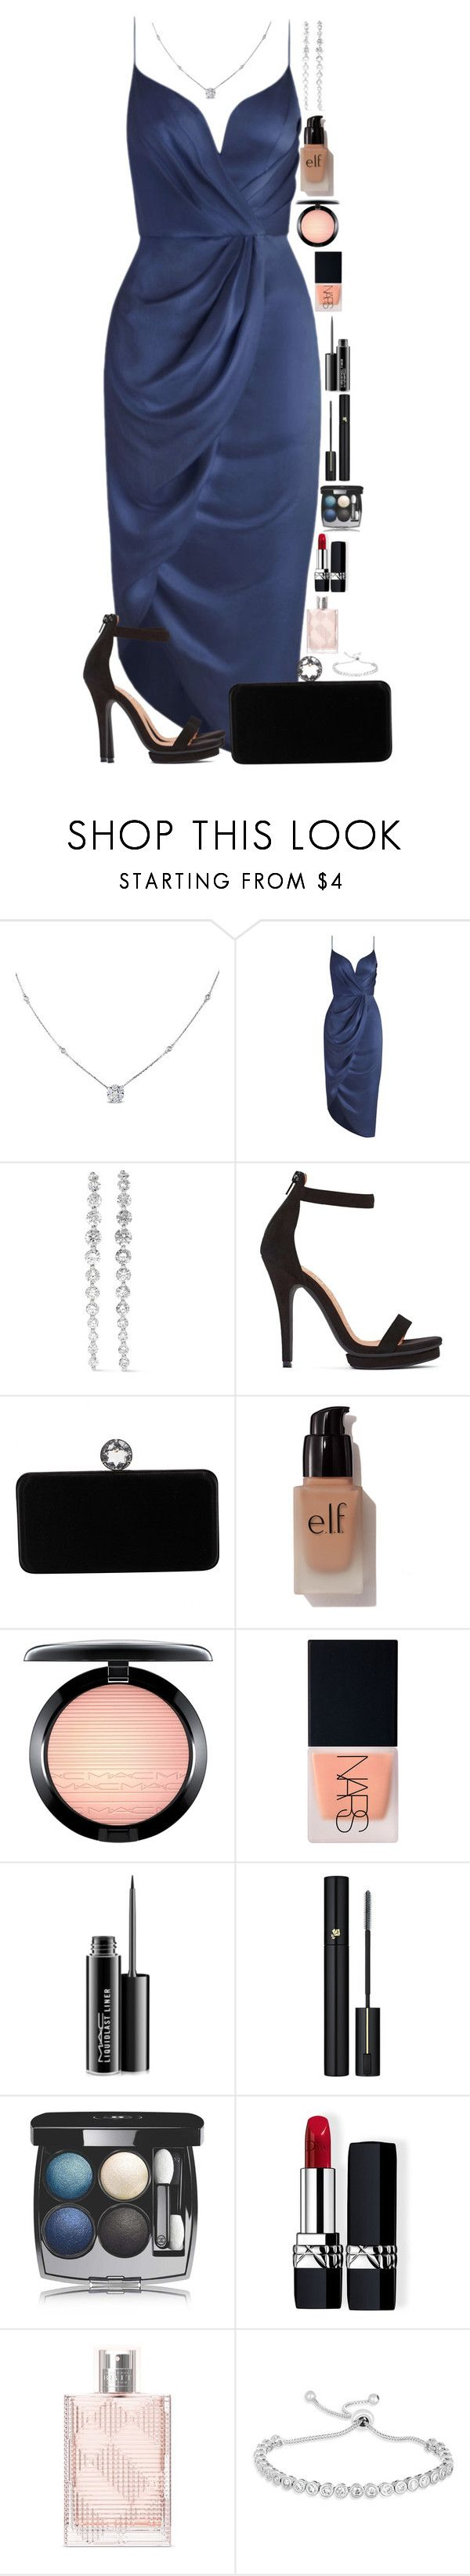 Meneaito by macapaz on Polyvore featuring Zimmermann, Jeffrey Campbell, Swarovski, Ice, Anita Ko, e.l.f., Chanel, NARS Cosmetics, MAC Cosmetics and Christian Dior